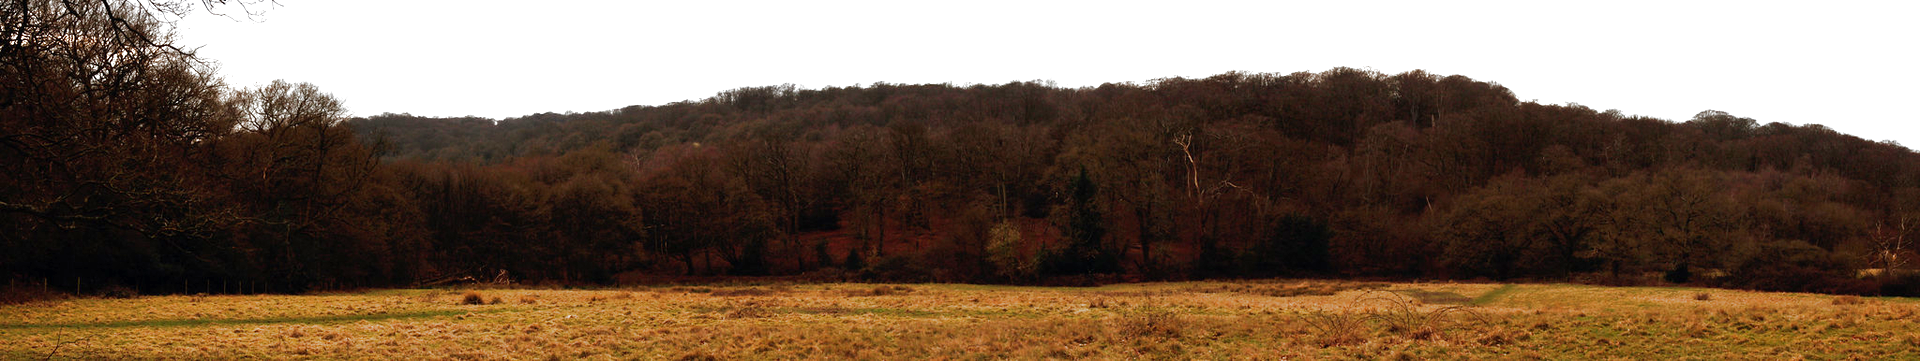 Epping Forest,near Debden (Epping Forest near Debden by chiron3636 on Flickr.com, CC BY 2.0)